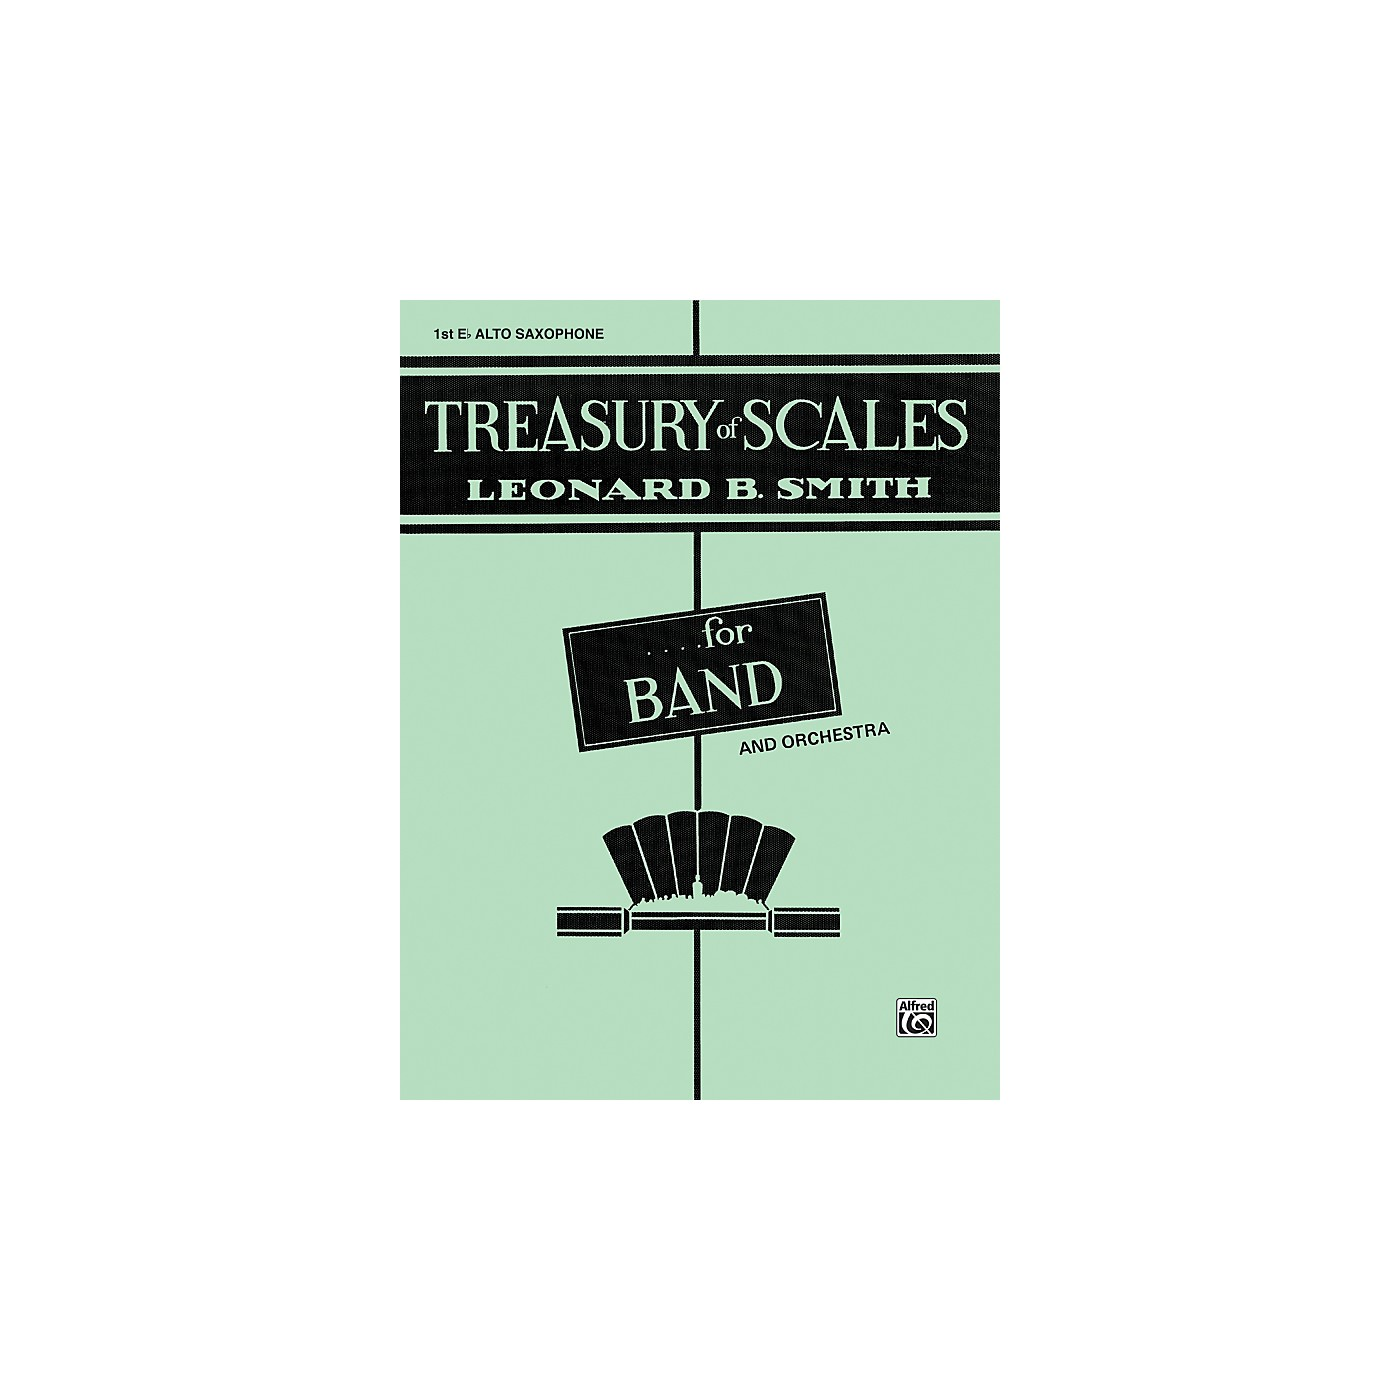 Alfred Treasury of Scales for Band and Orchestra 1st E-Flat Alto Saxophone thumbnail